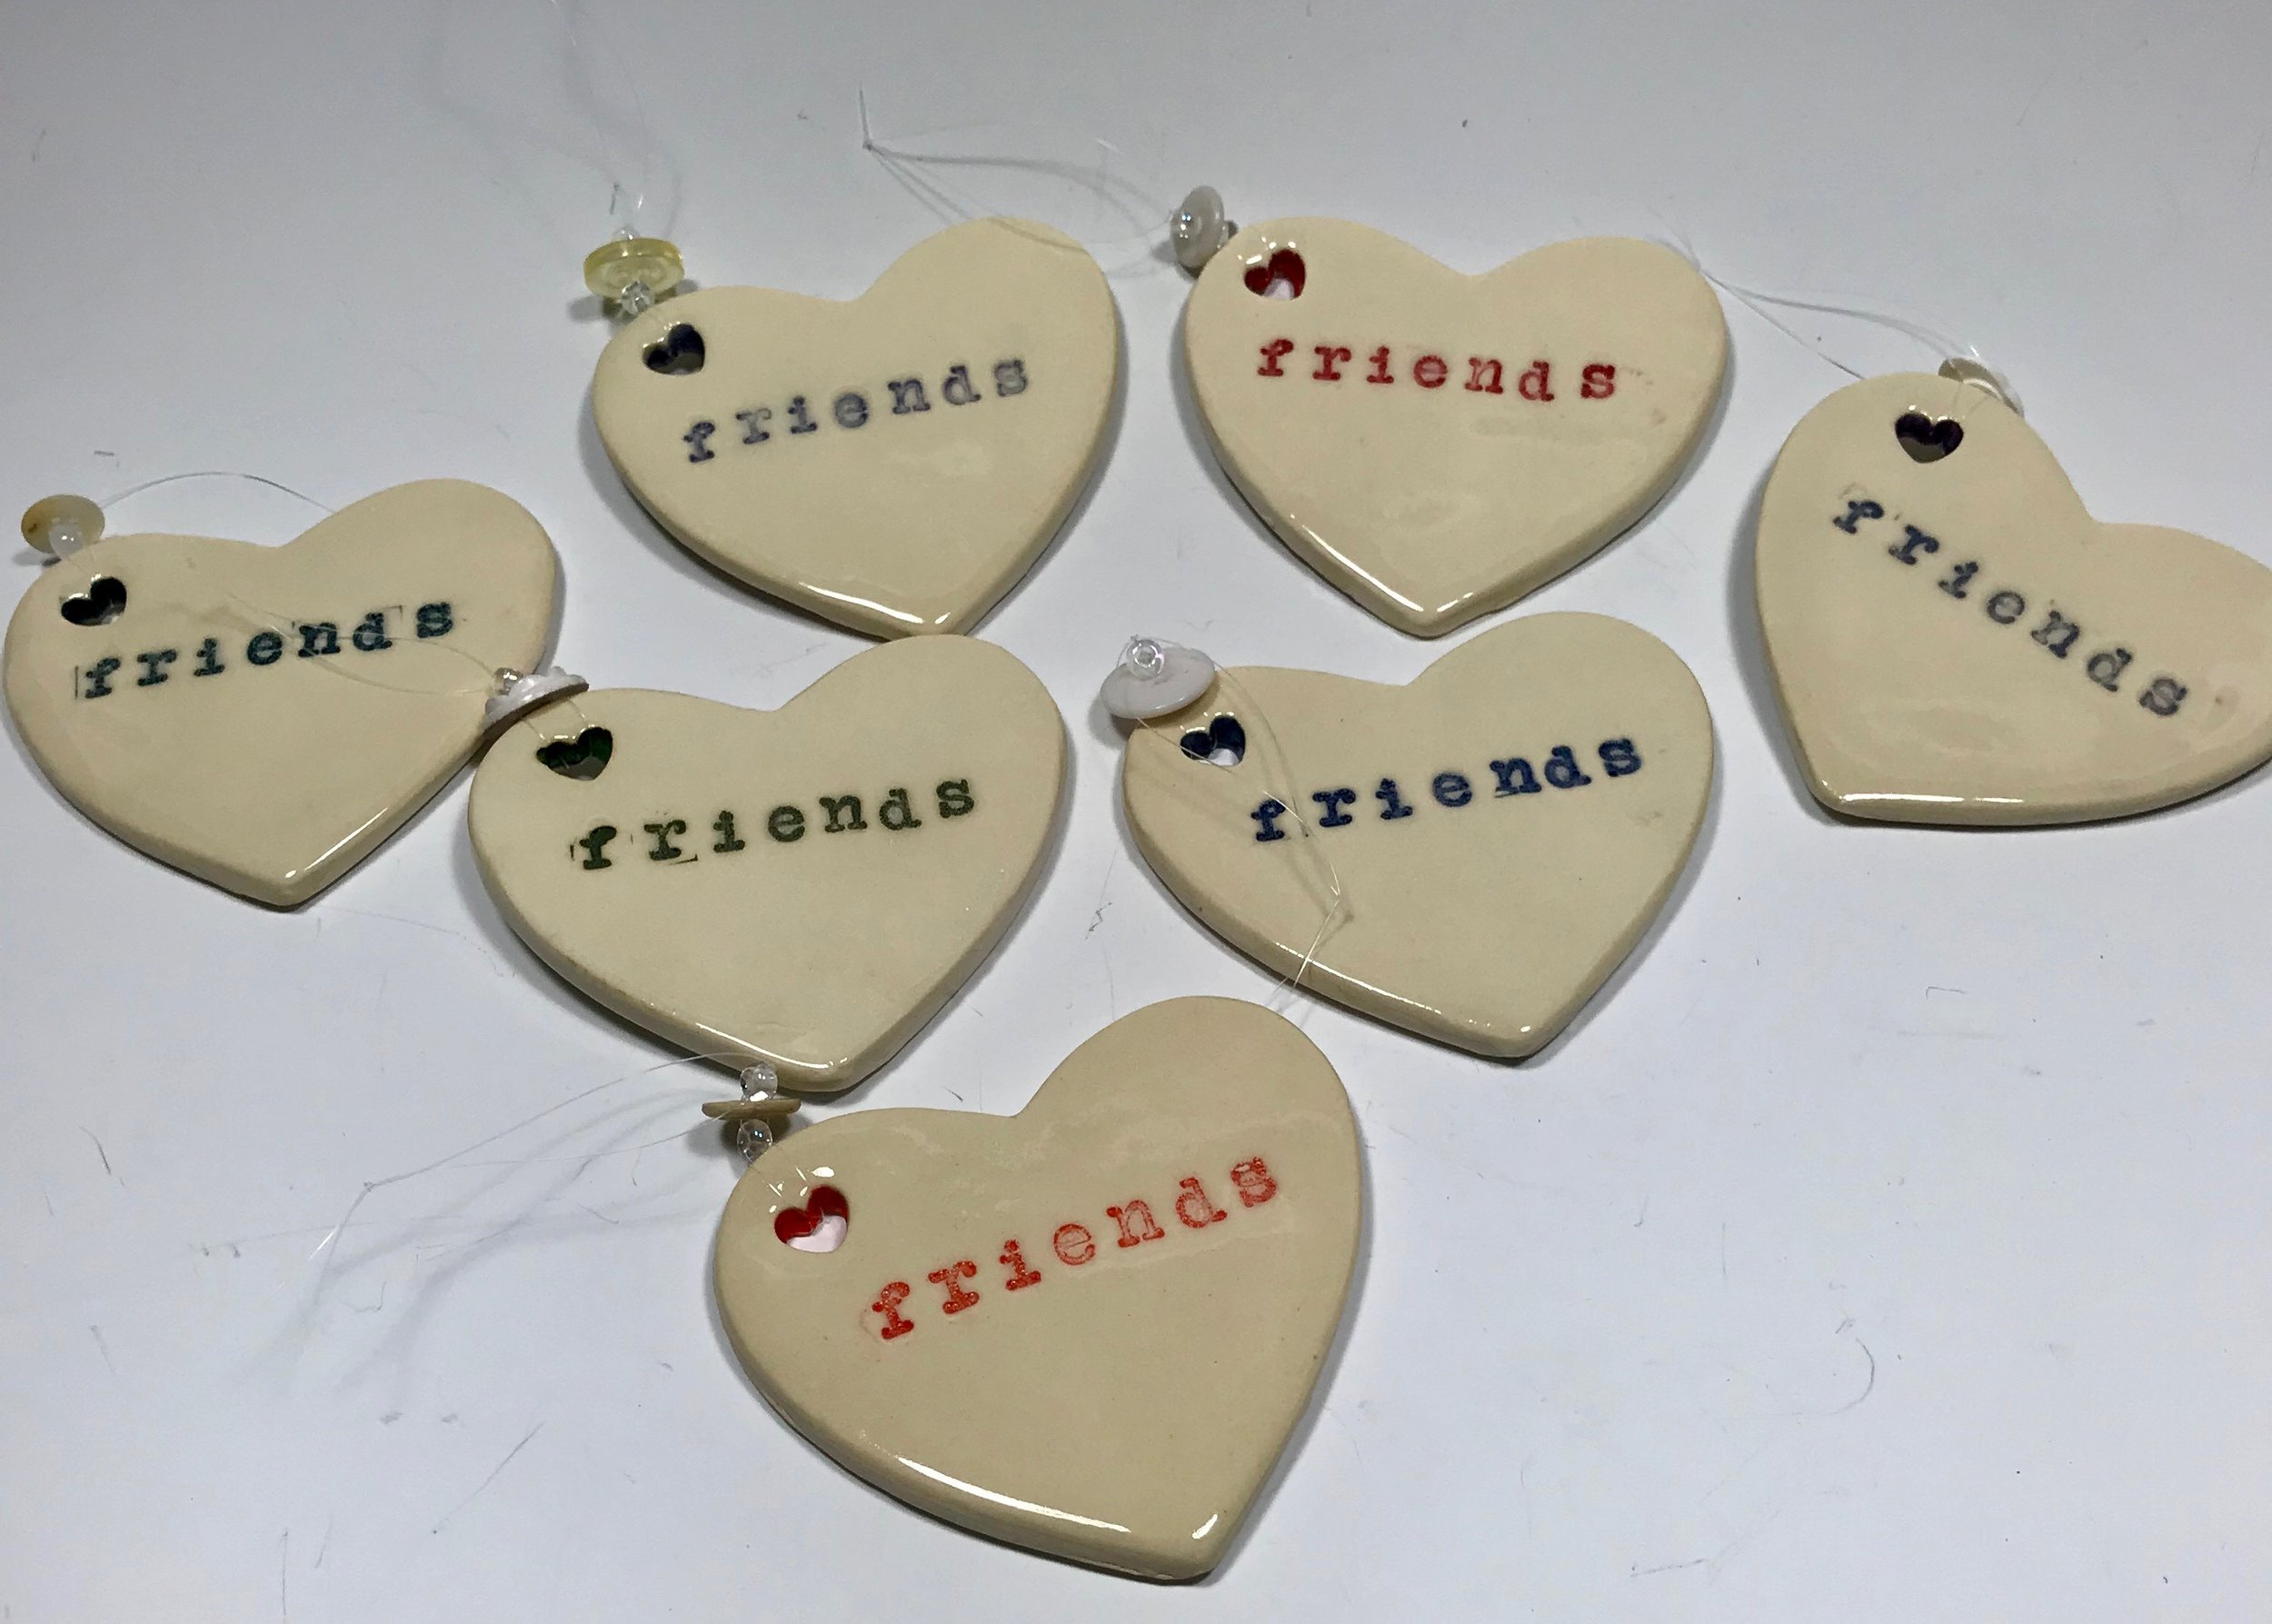 Customers often ask me to personalize an order just for them. These holiday ornaments will be gifted to a circle of friends this coming holiday season.